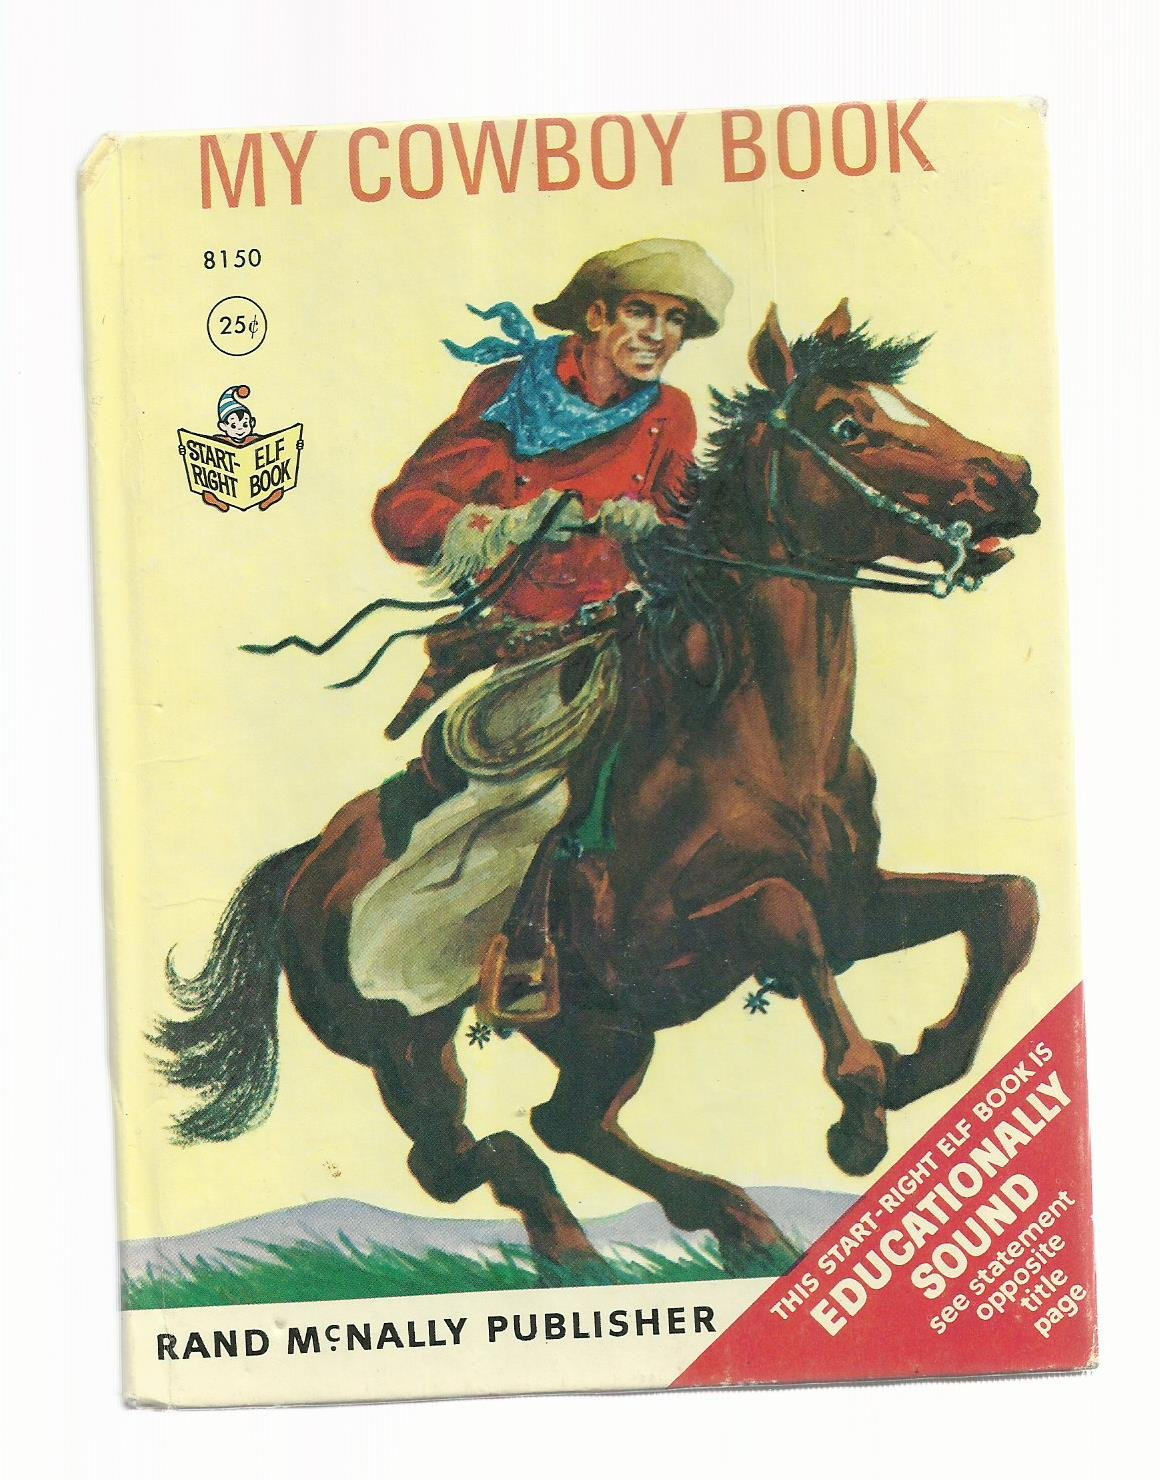 My Cowboy Book, 1967 A Vintage Rand McNally Start Right Elf Children's Book